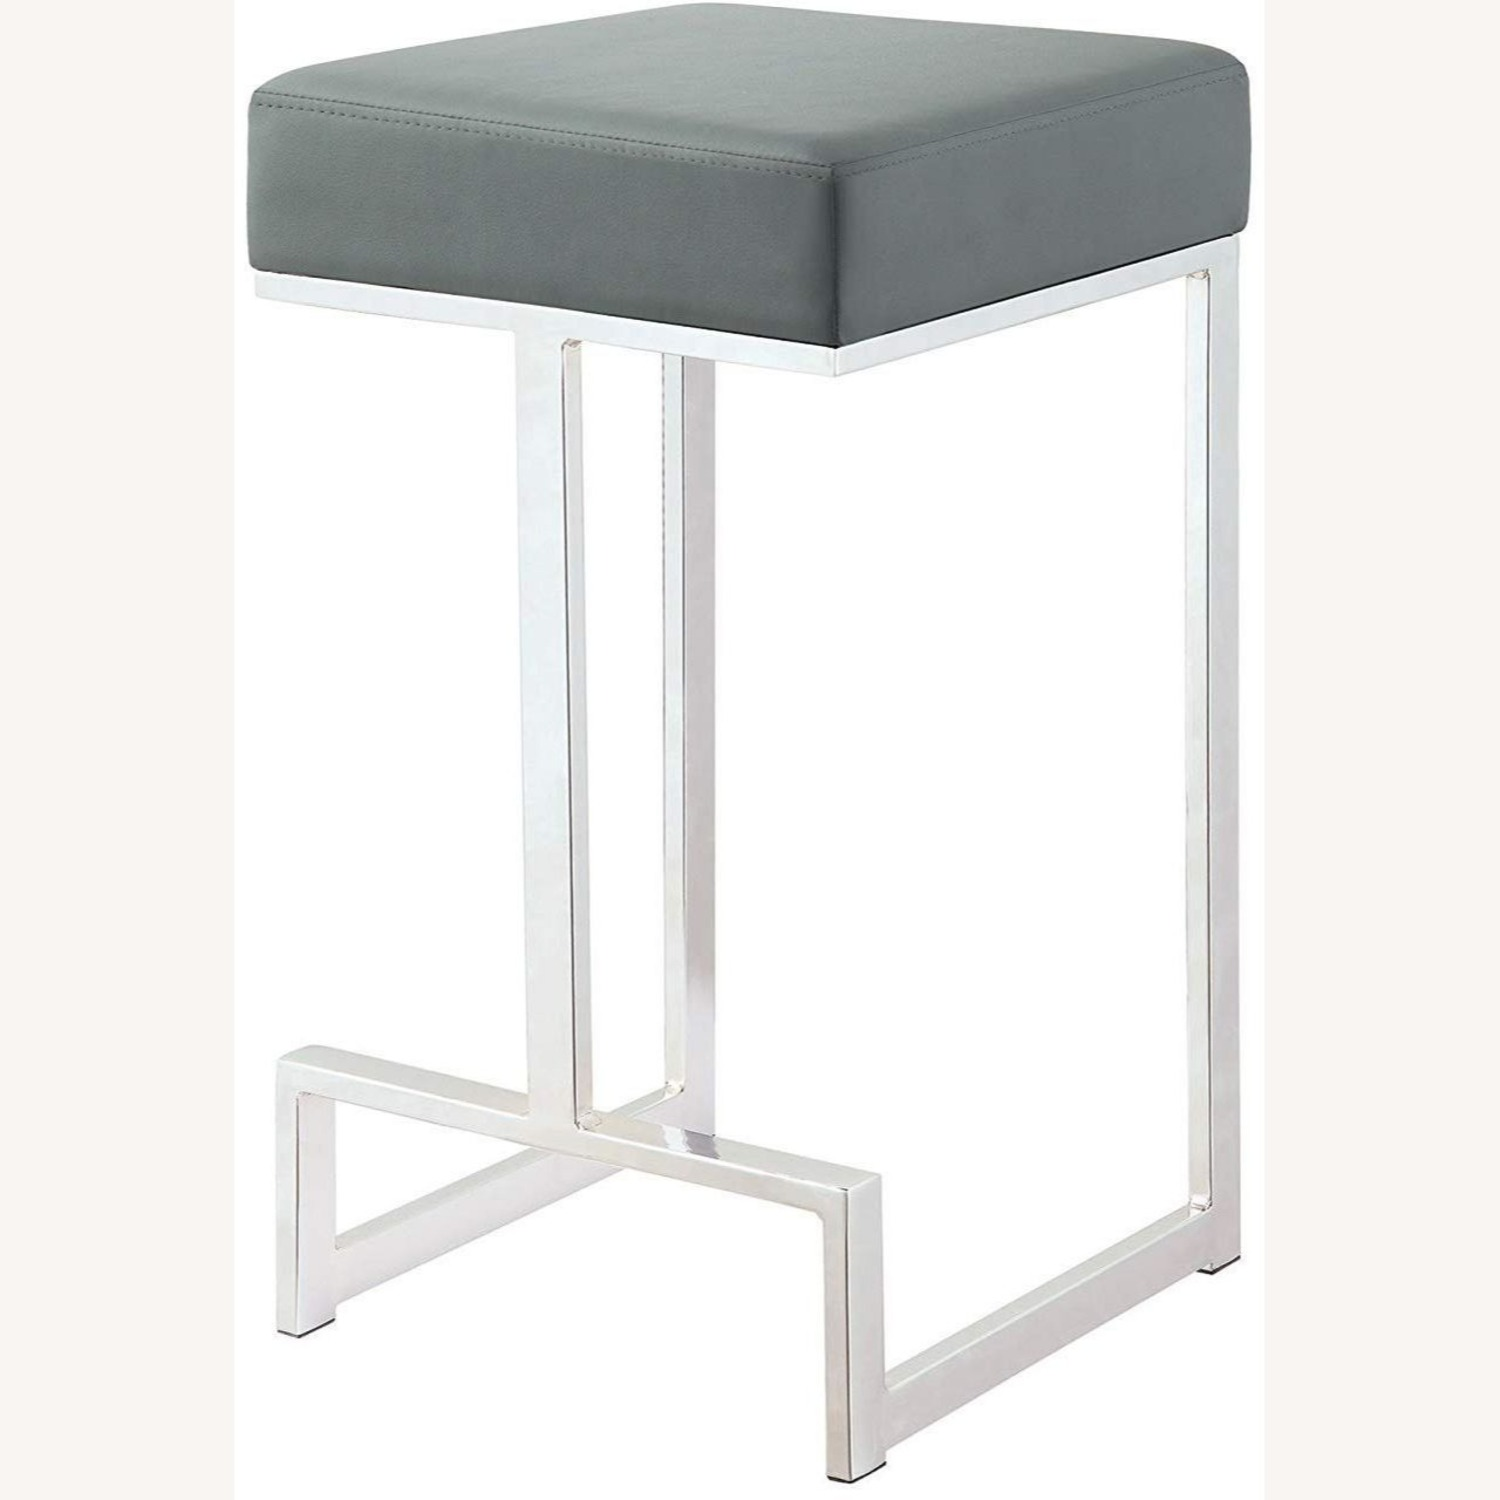 Modern Counter Height Stool In Grey Faux Leather - image-1